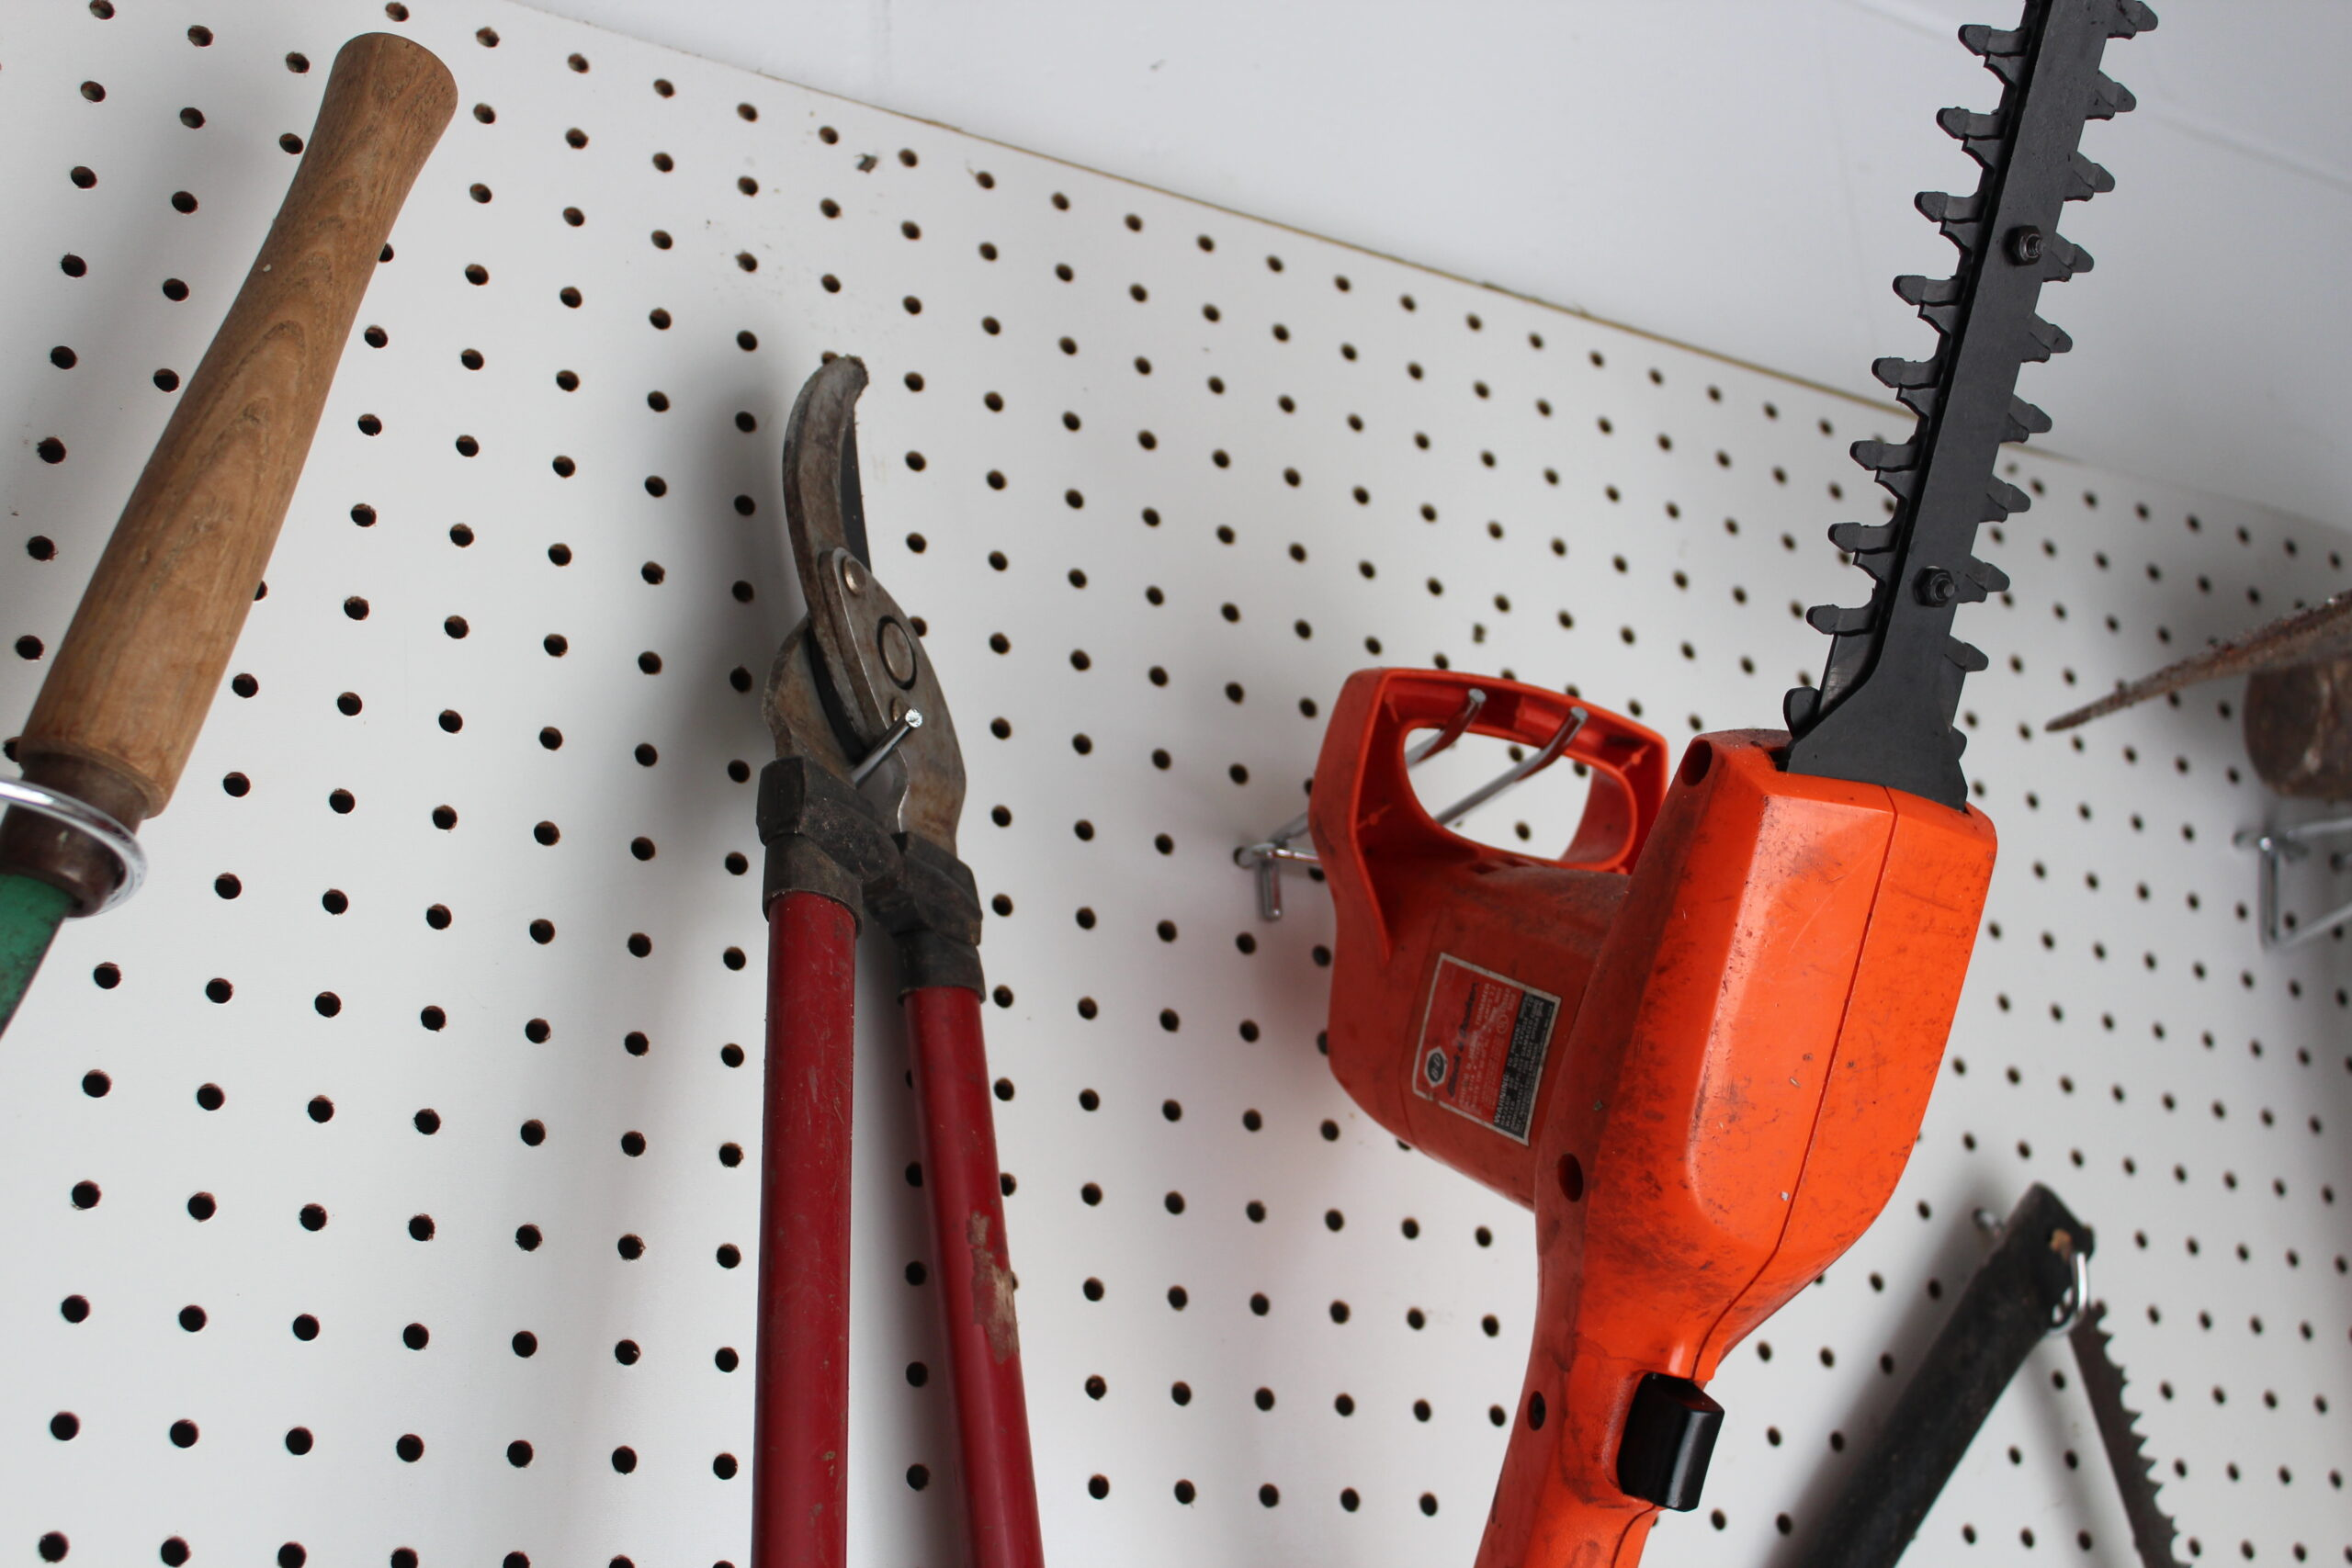 Pegboard Hooks for Power Tools